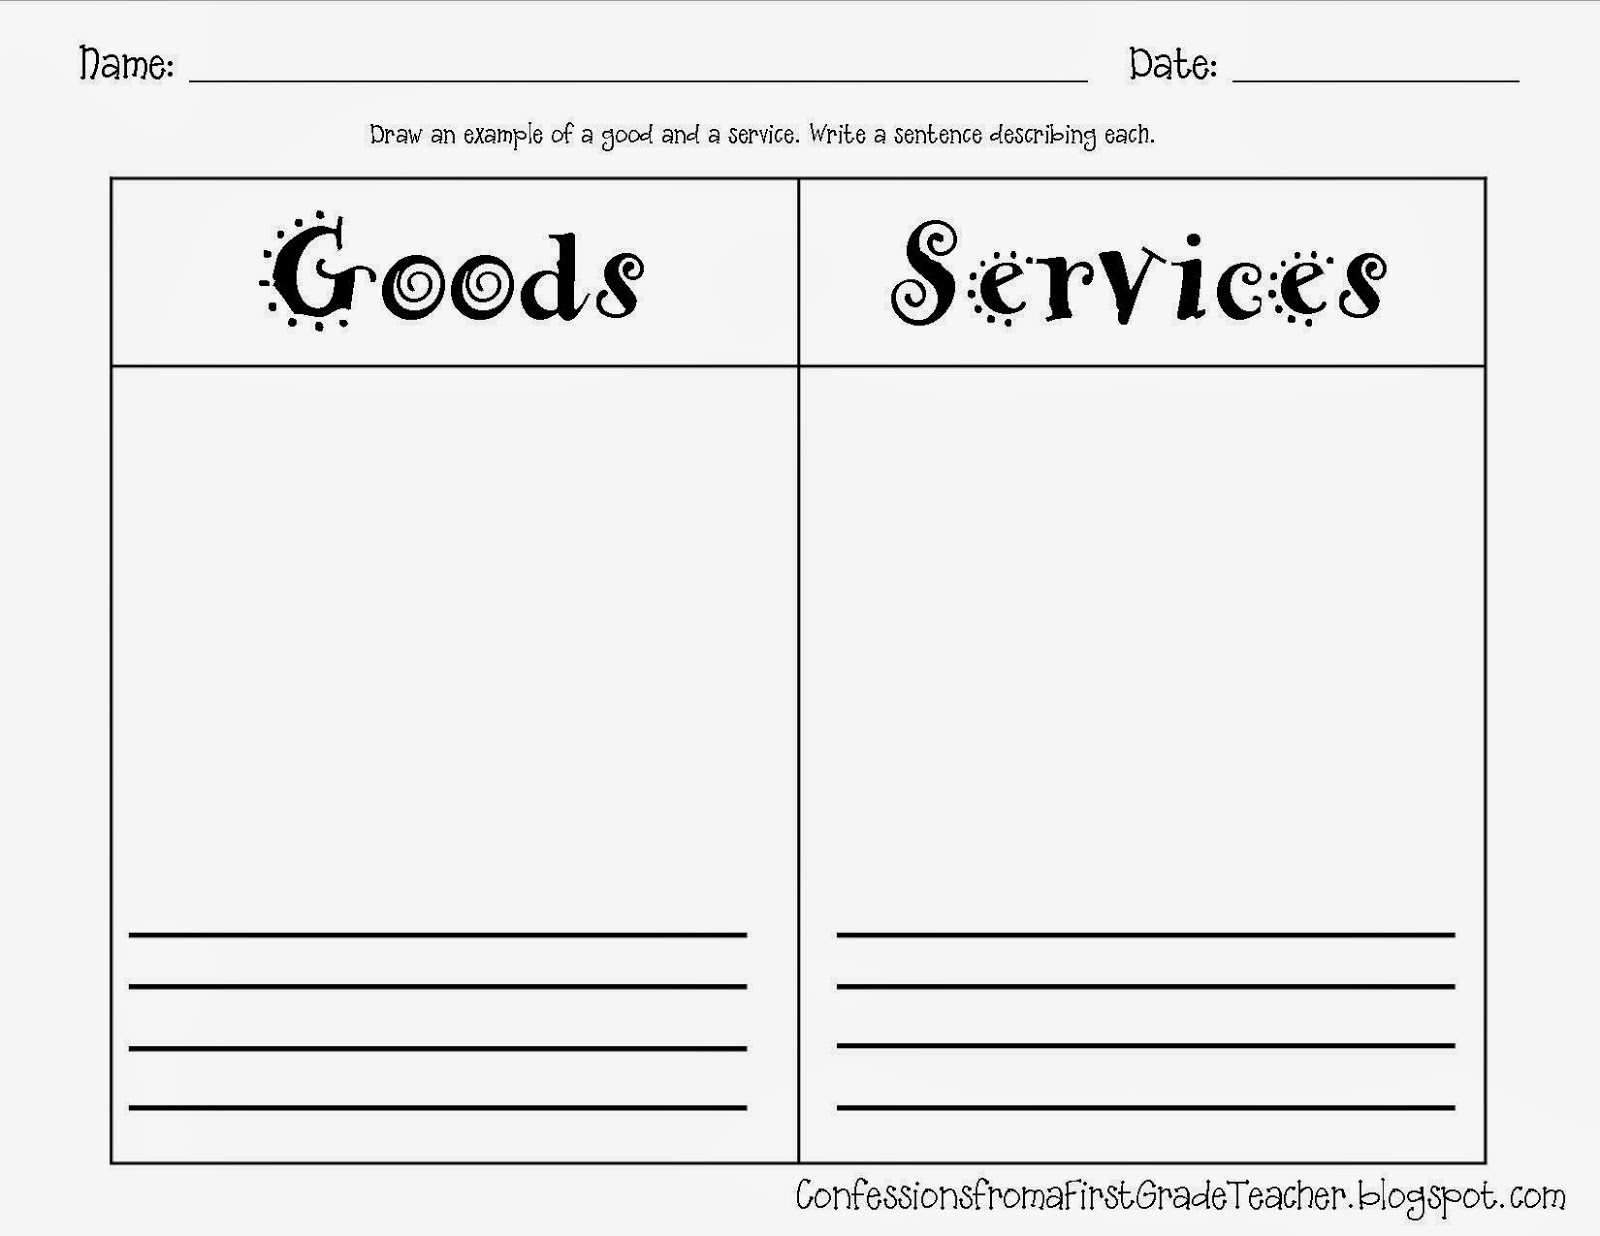 Printables Goods And Services Worksheets goods and services worksheets abitlikethis worksheet first grade images